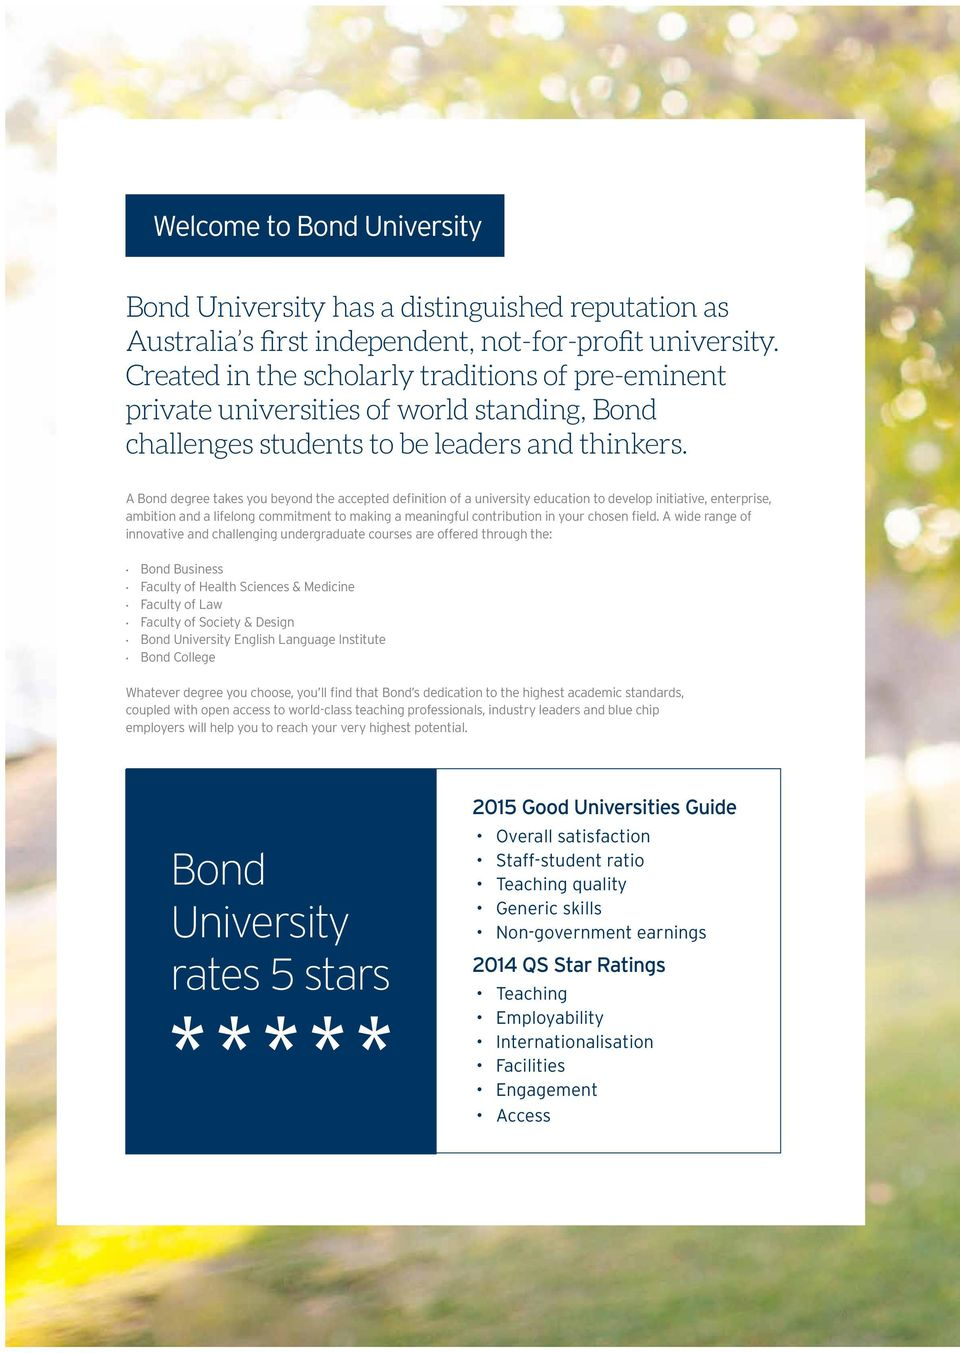 A Bond degree takes you beyond the accepted definition of a university education to develop initiative, enterprise, ambition and a lifelong commitment to making a meaningful contribution in your